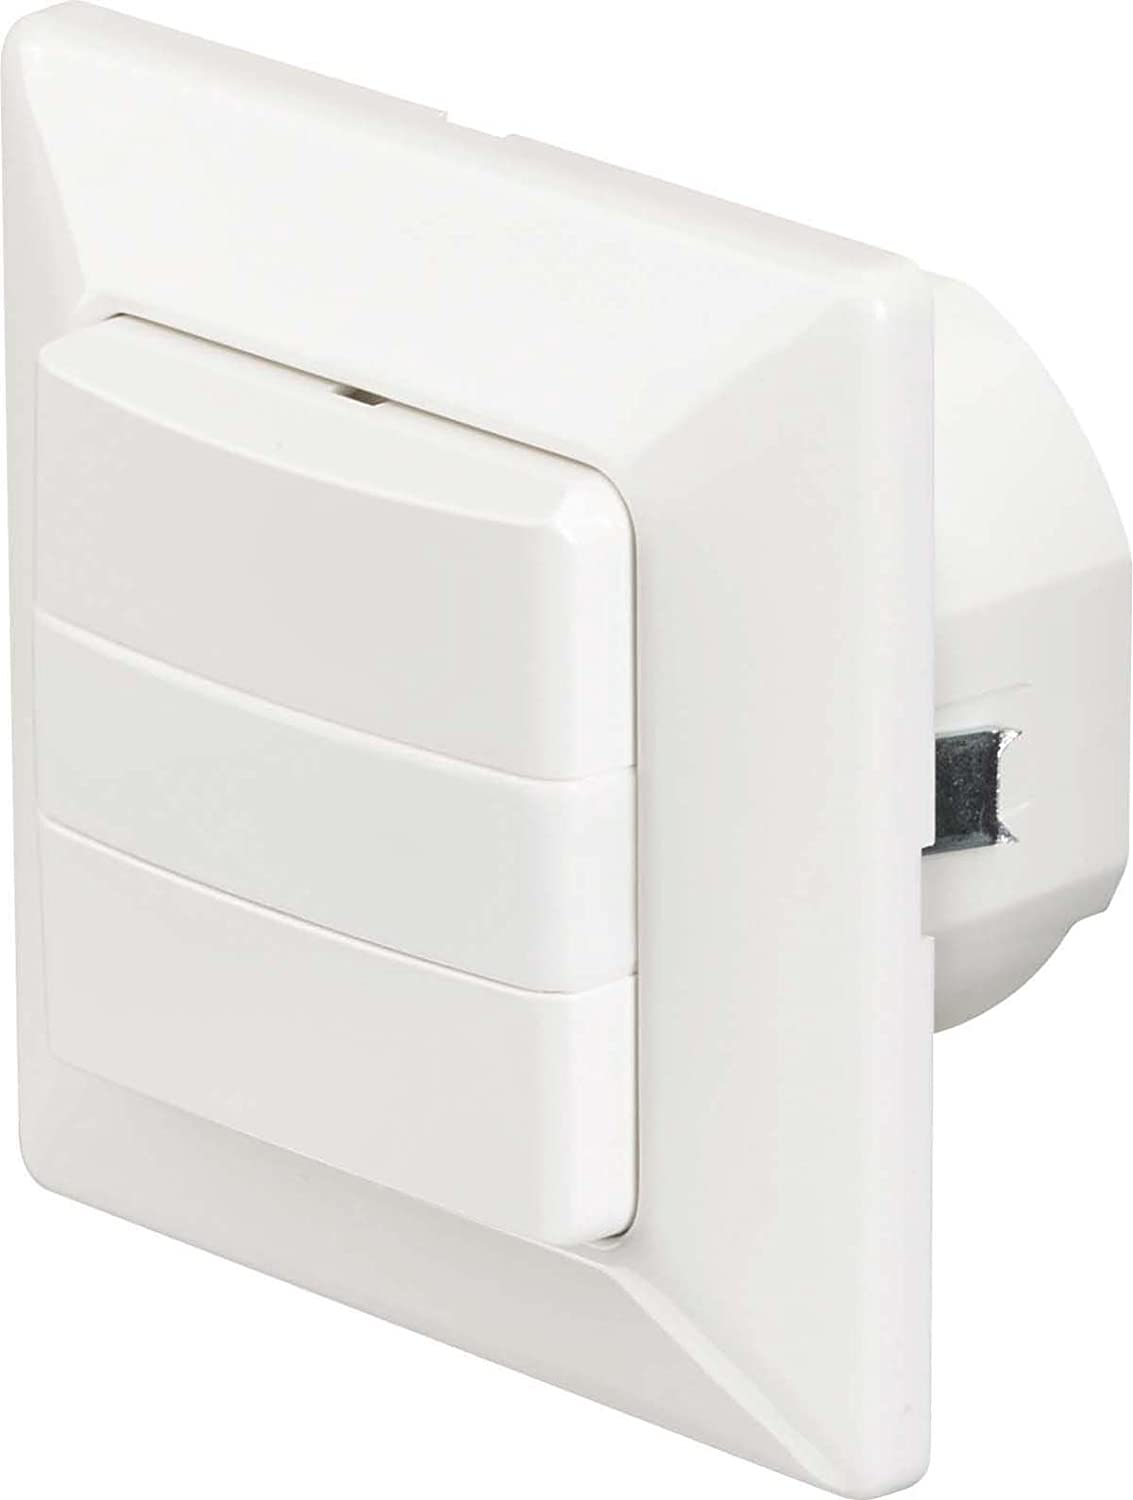 Philips occuswitch - Detector movimiento lrm1033/00 sustitución interruptor 2 hilo: Amazon.es: Iluminación